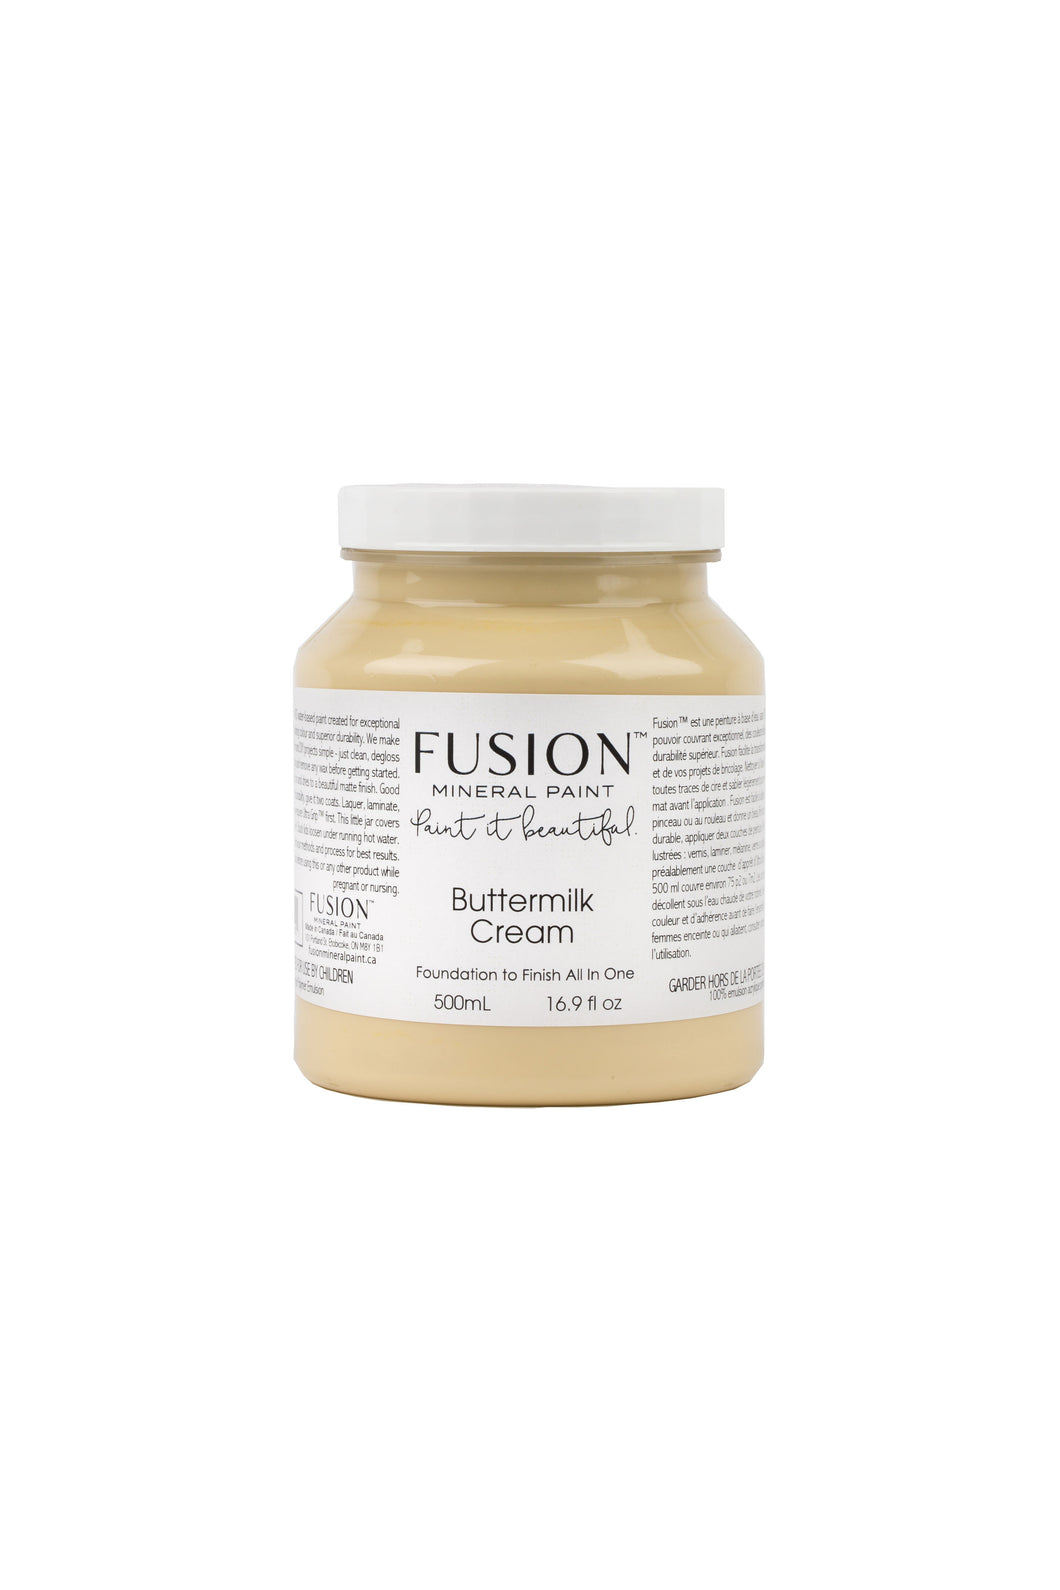 Fusion Mineral Paint - Buttermilk Cream   $40.00